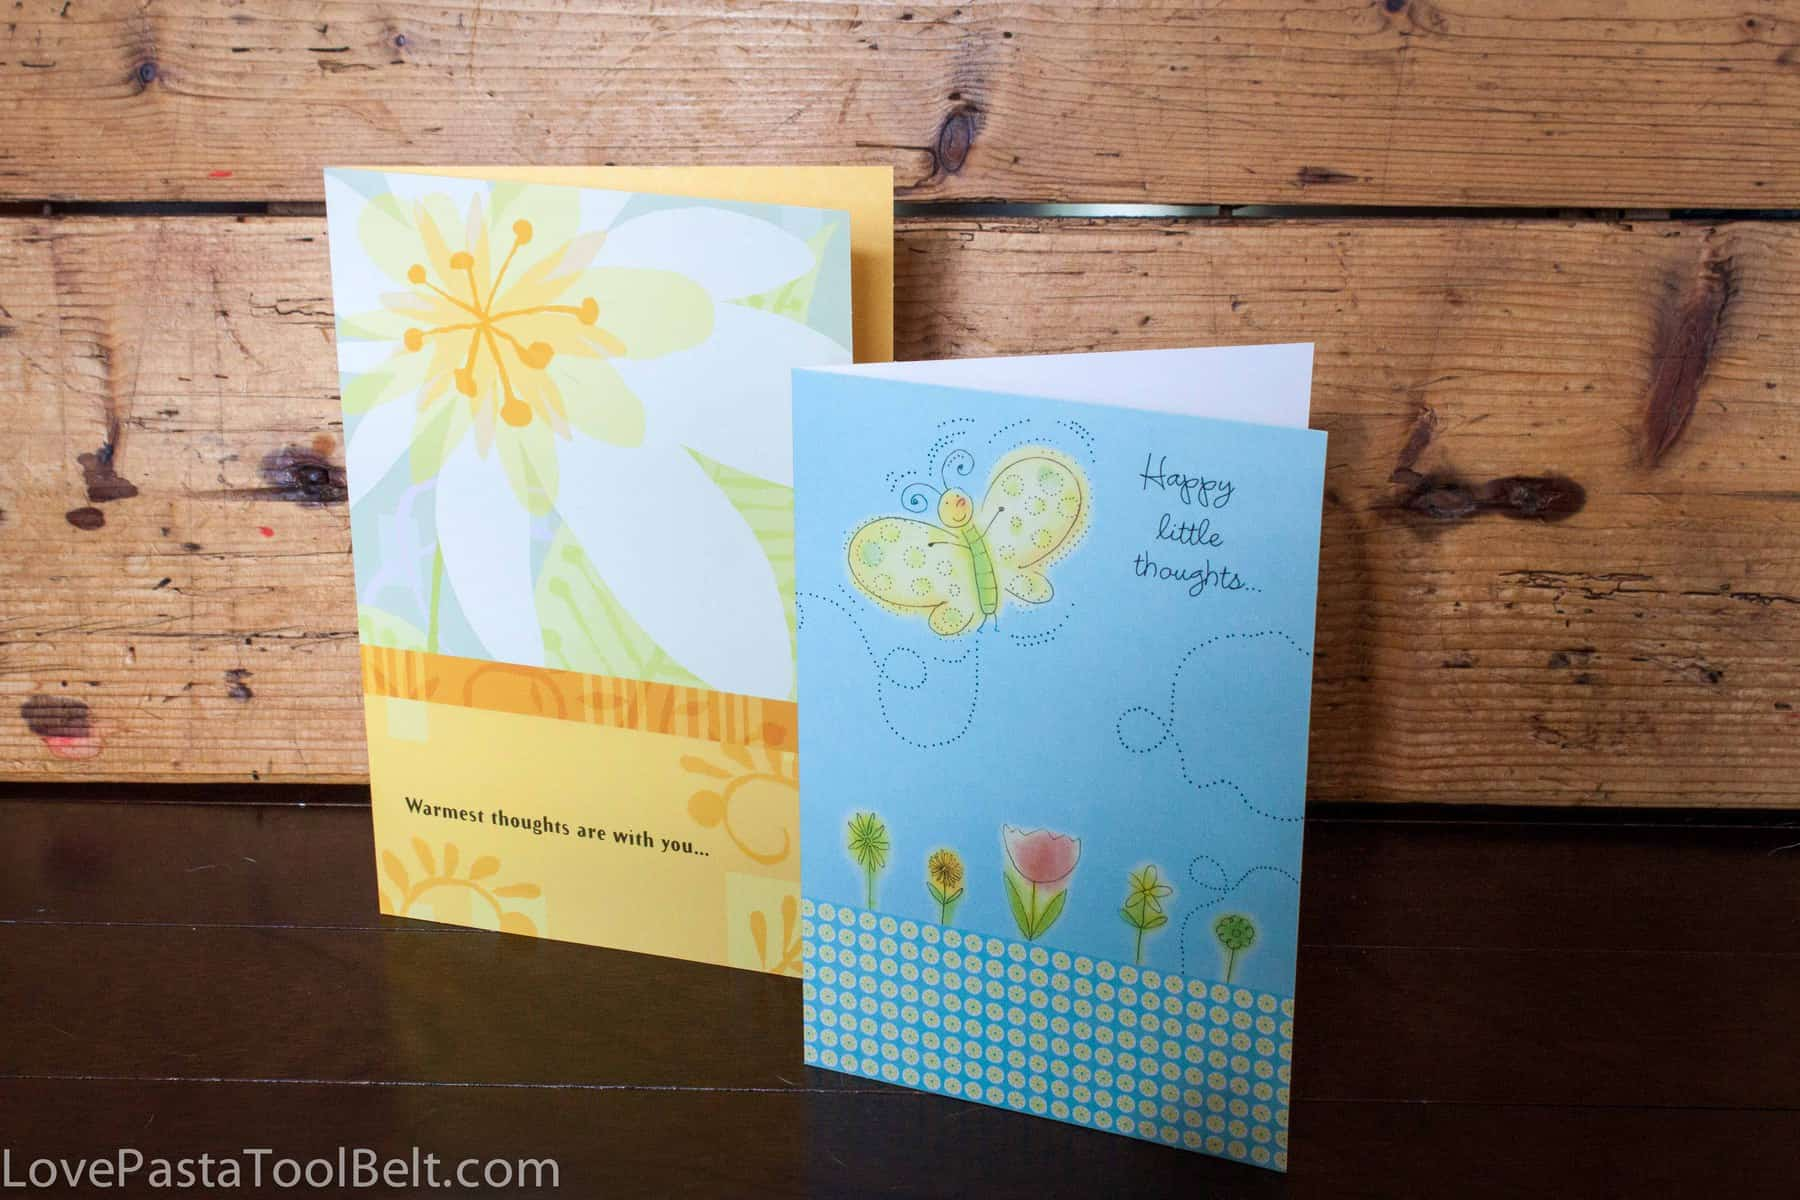 Back To School Greetings With Hallmark Love Pasta And A Tool Belt